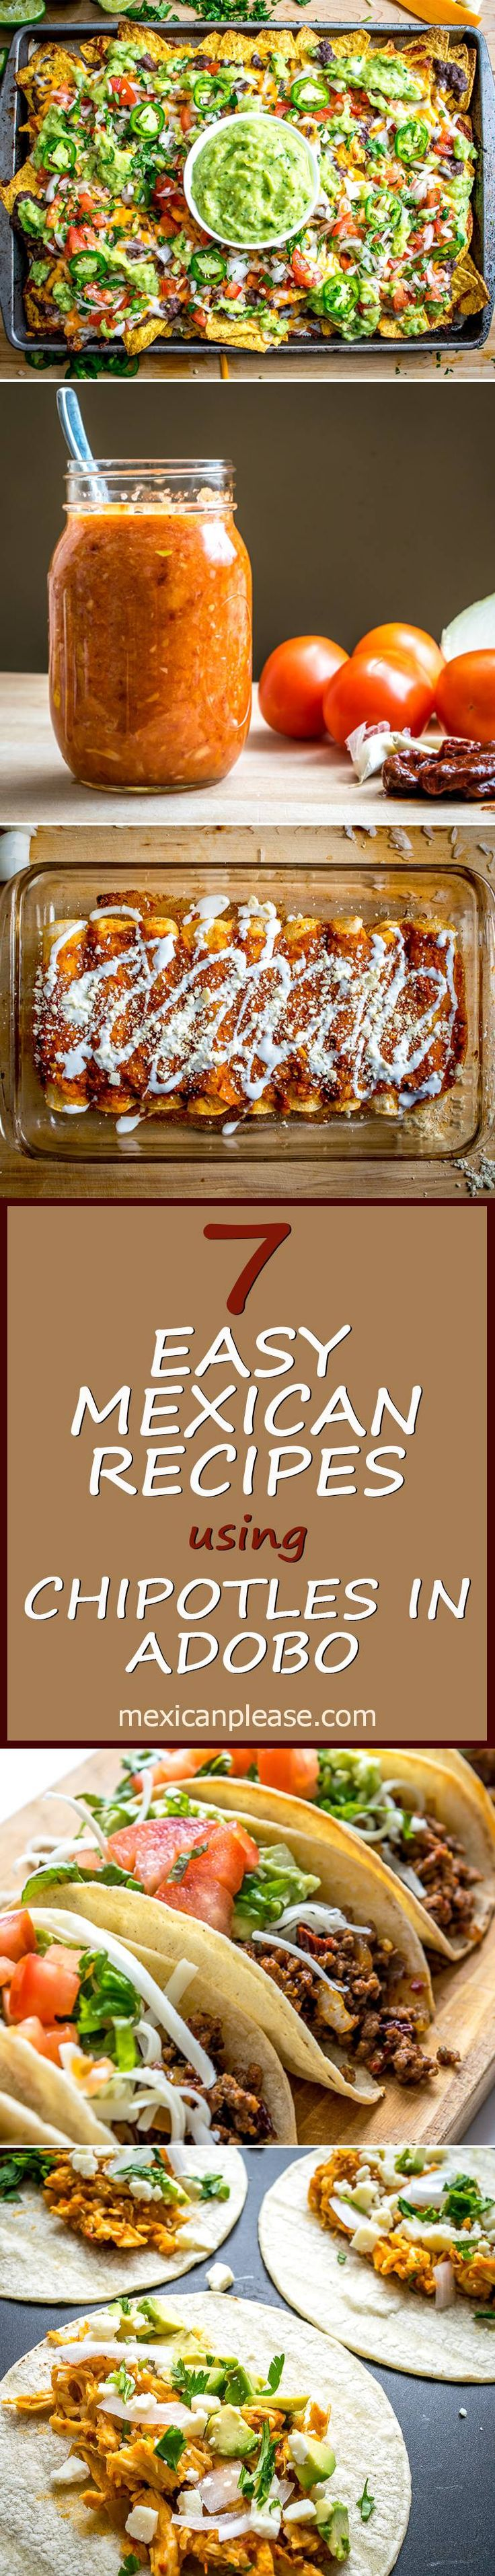 Keep a few cans of chipotles in adobo around and you'll always have the option of making any of these seven Mexican recipes!  Includes recipes for ground beef tacos, tomato chipotle salsa, nachos, tinga tacos, and enchiladas!!  mexicanplease.com